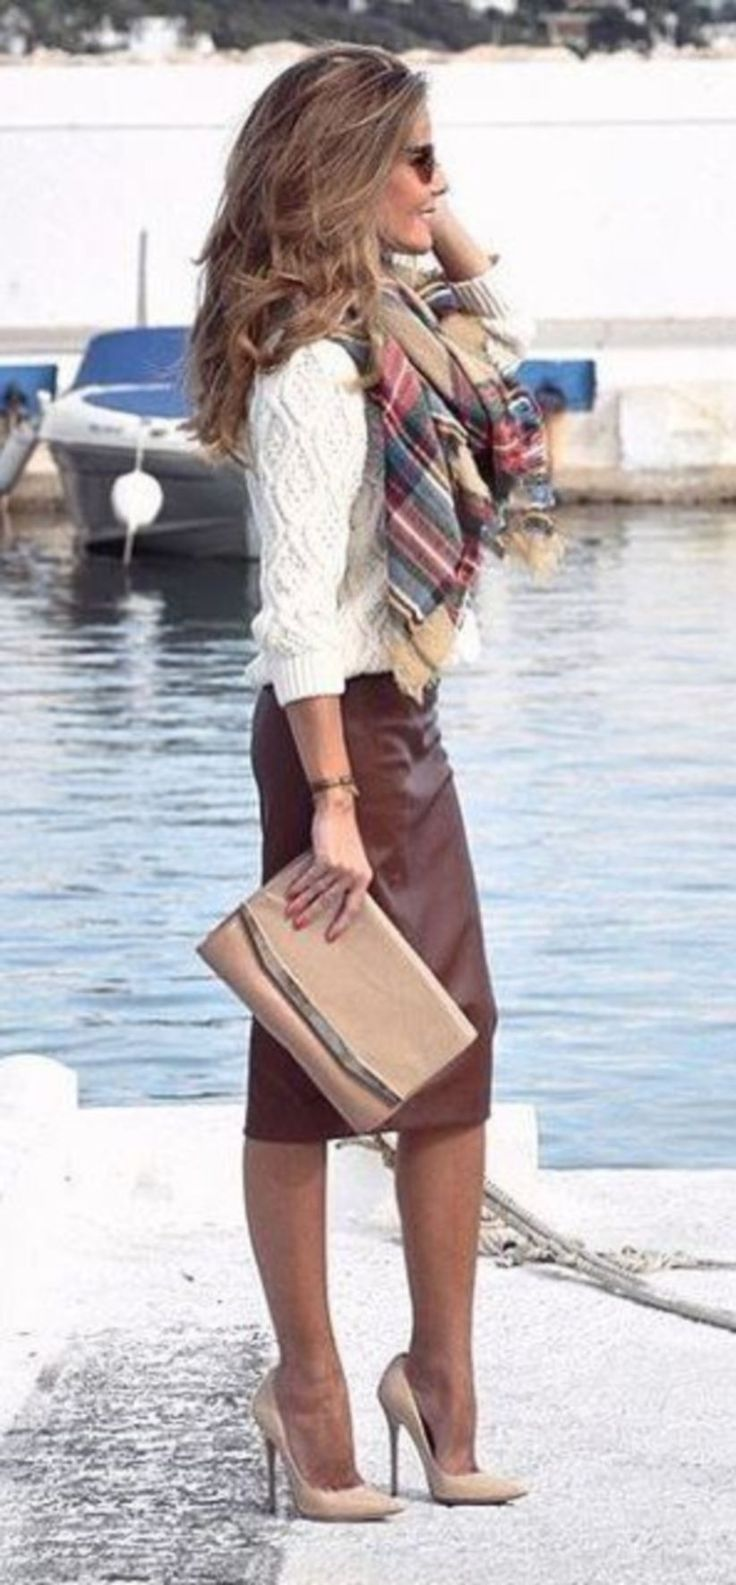 57 Skirt Outfits Modest for Business Women 2019